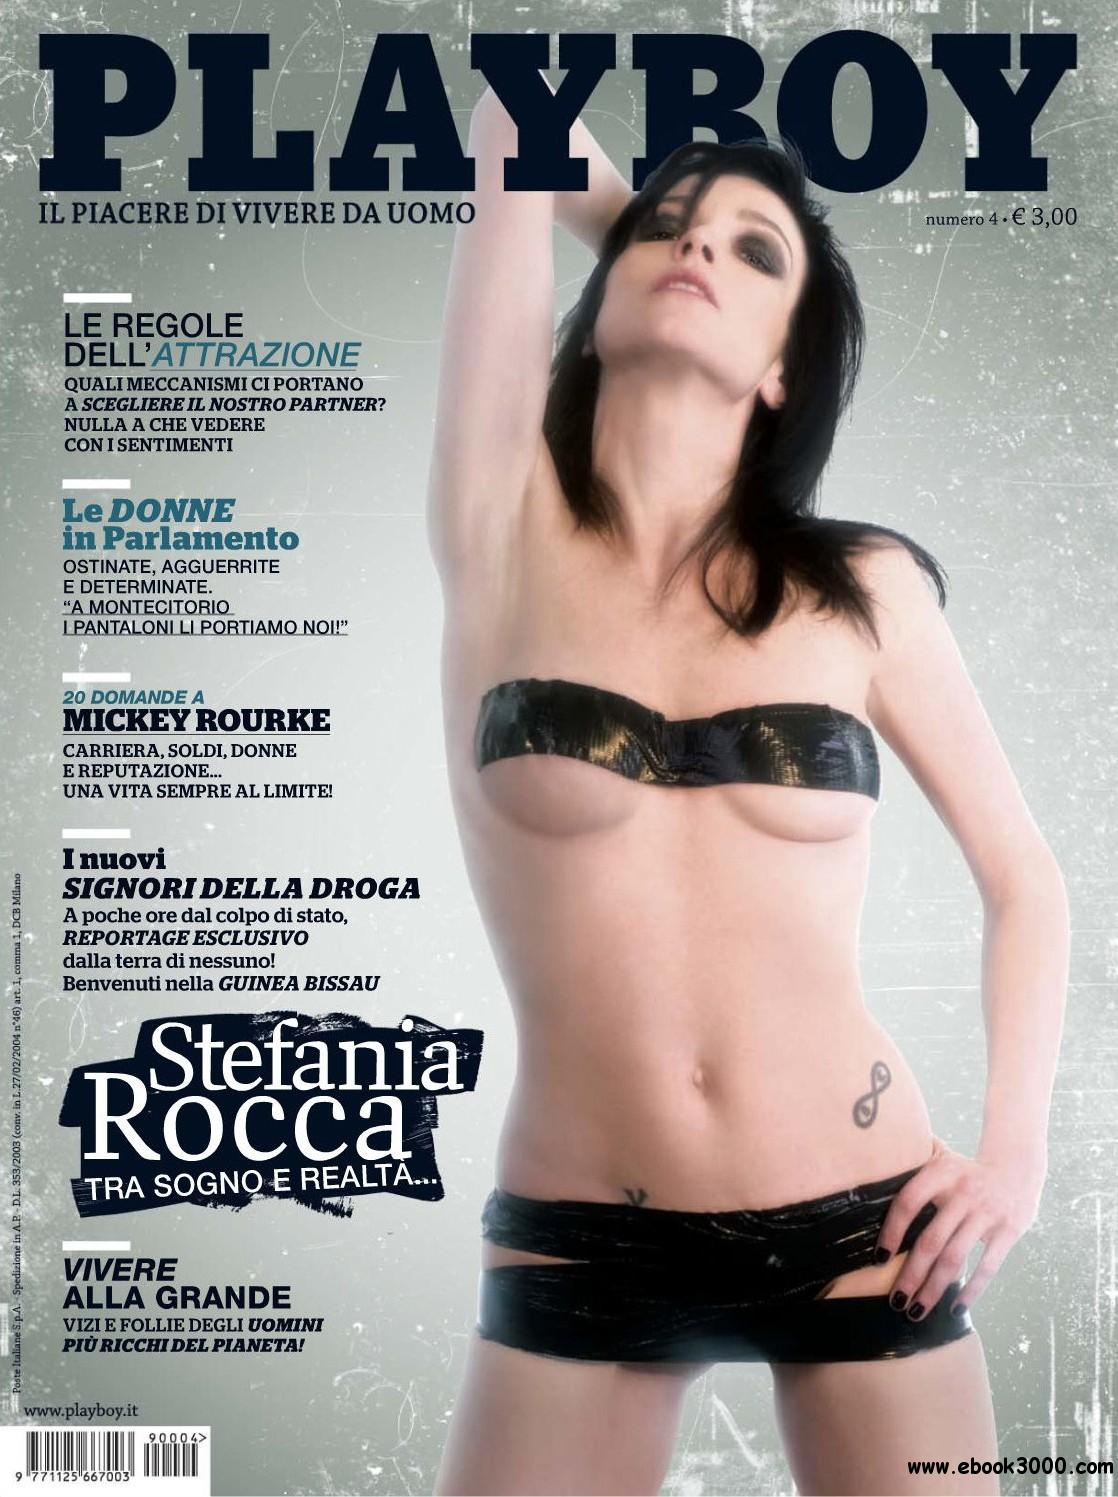 Playboy Italy - April 2009 free download